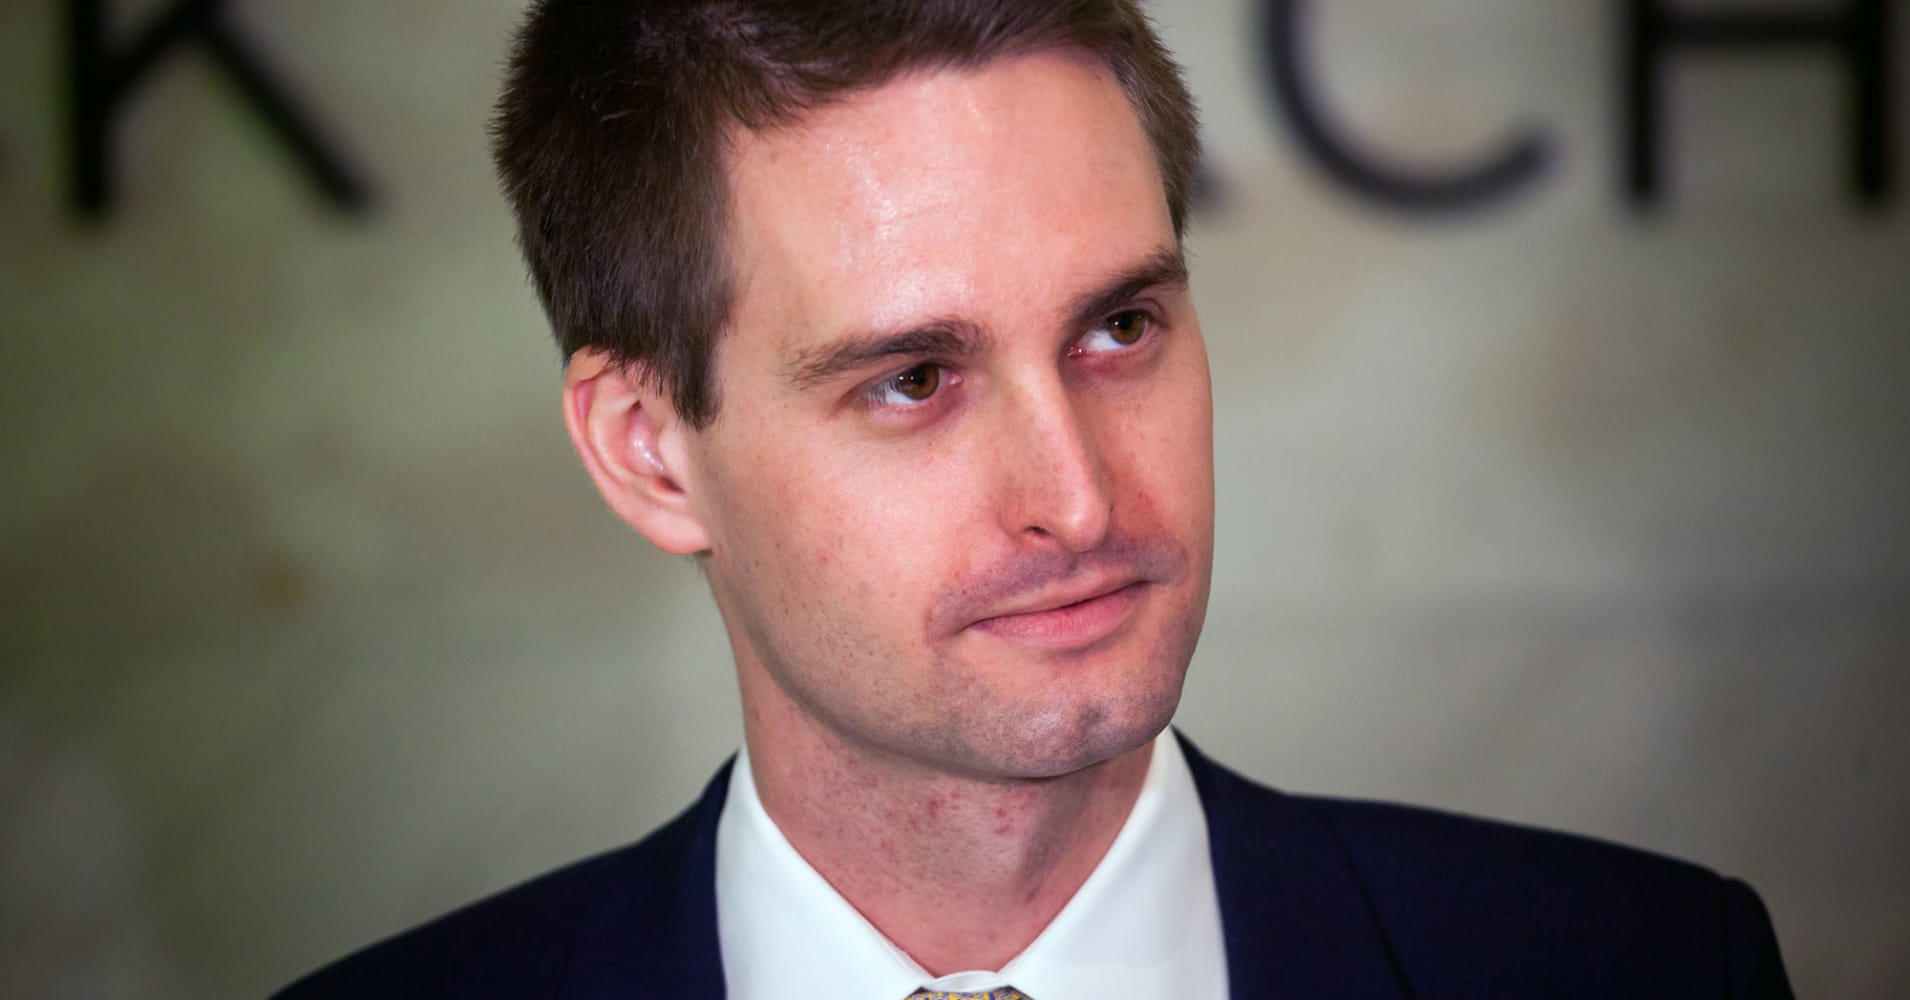 How much did evan spiegel make from ipo